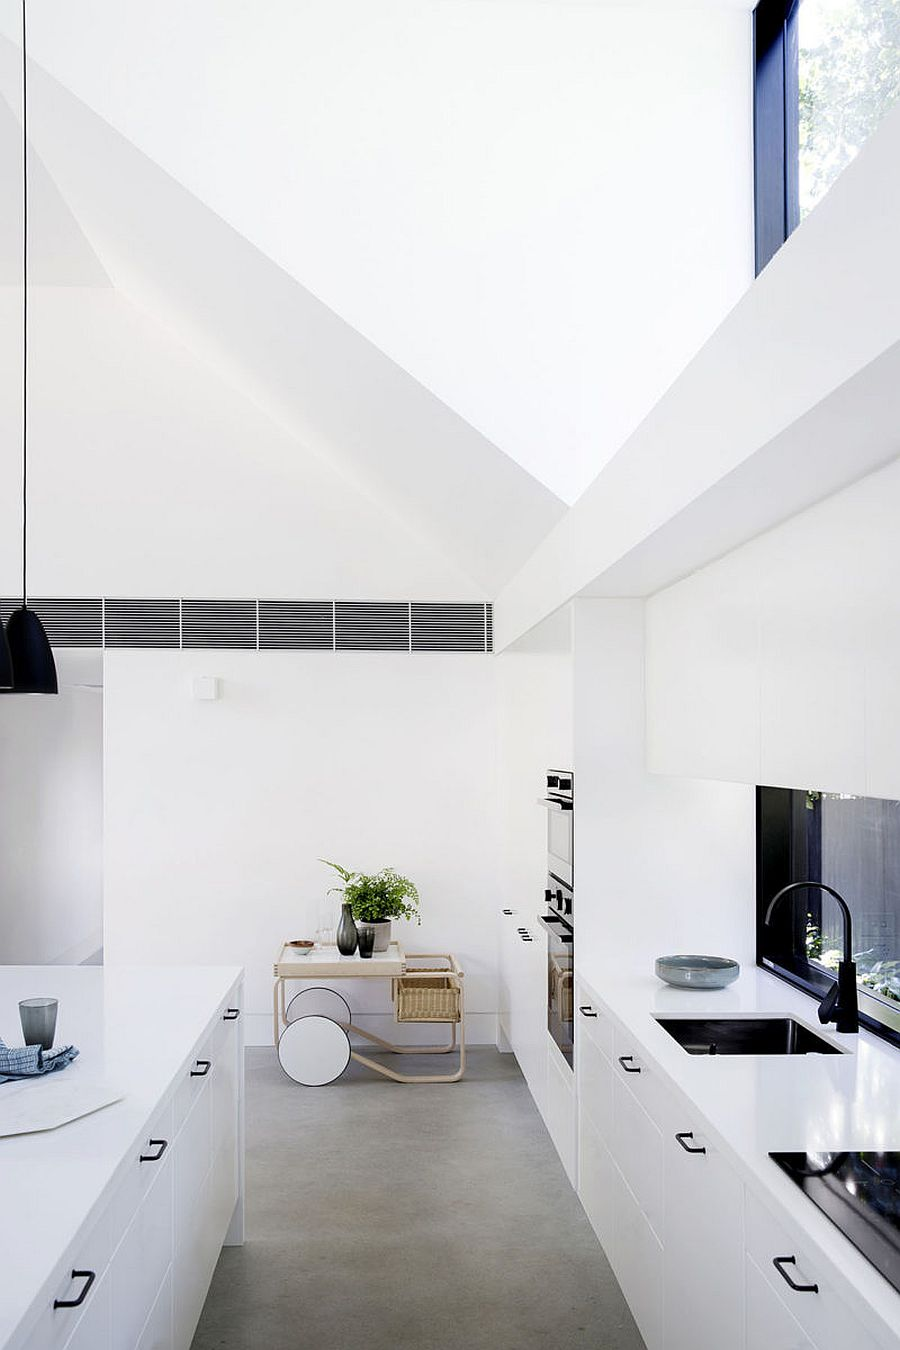 Kitchen-of-the-house-at-the-corner-feels-both-modern-and-has-a-space-savvy-design-11653